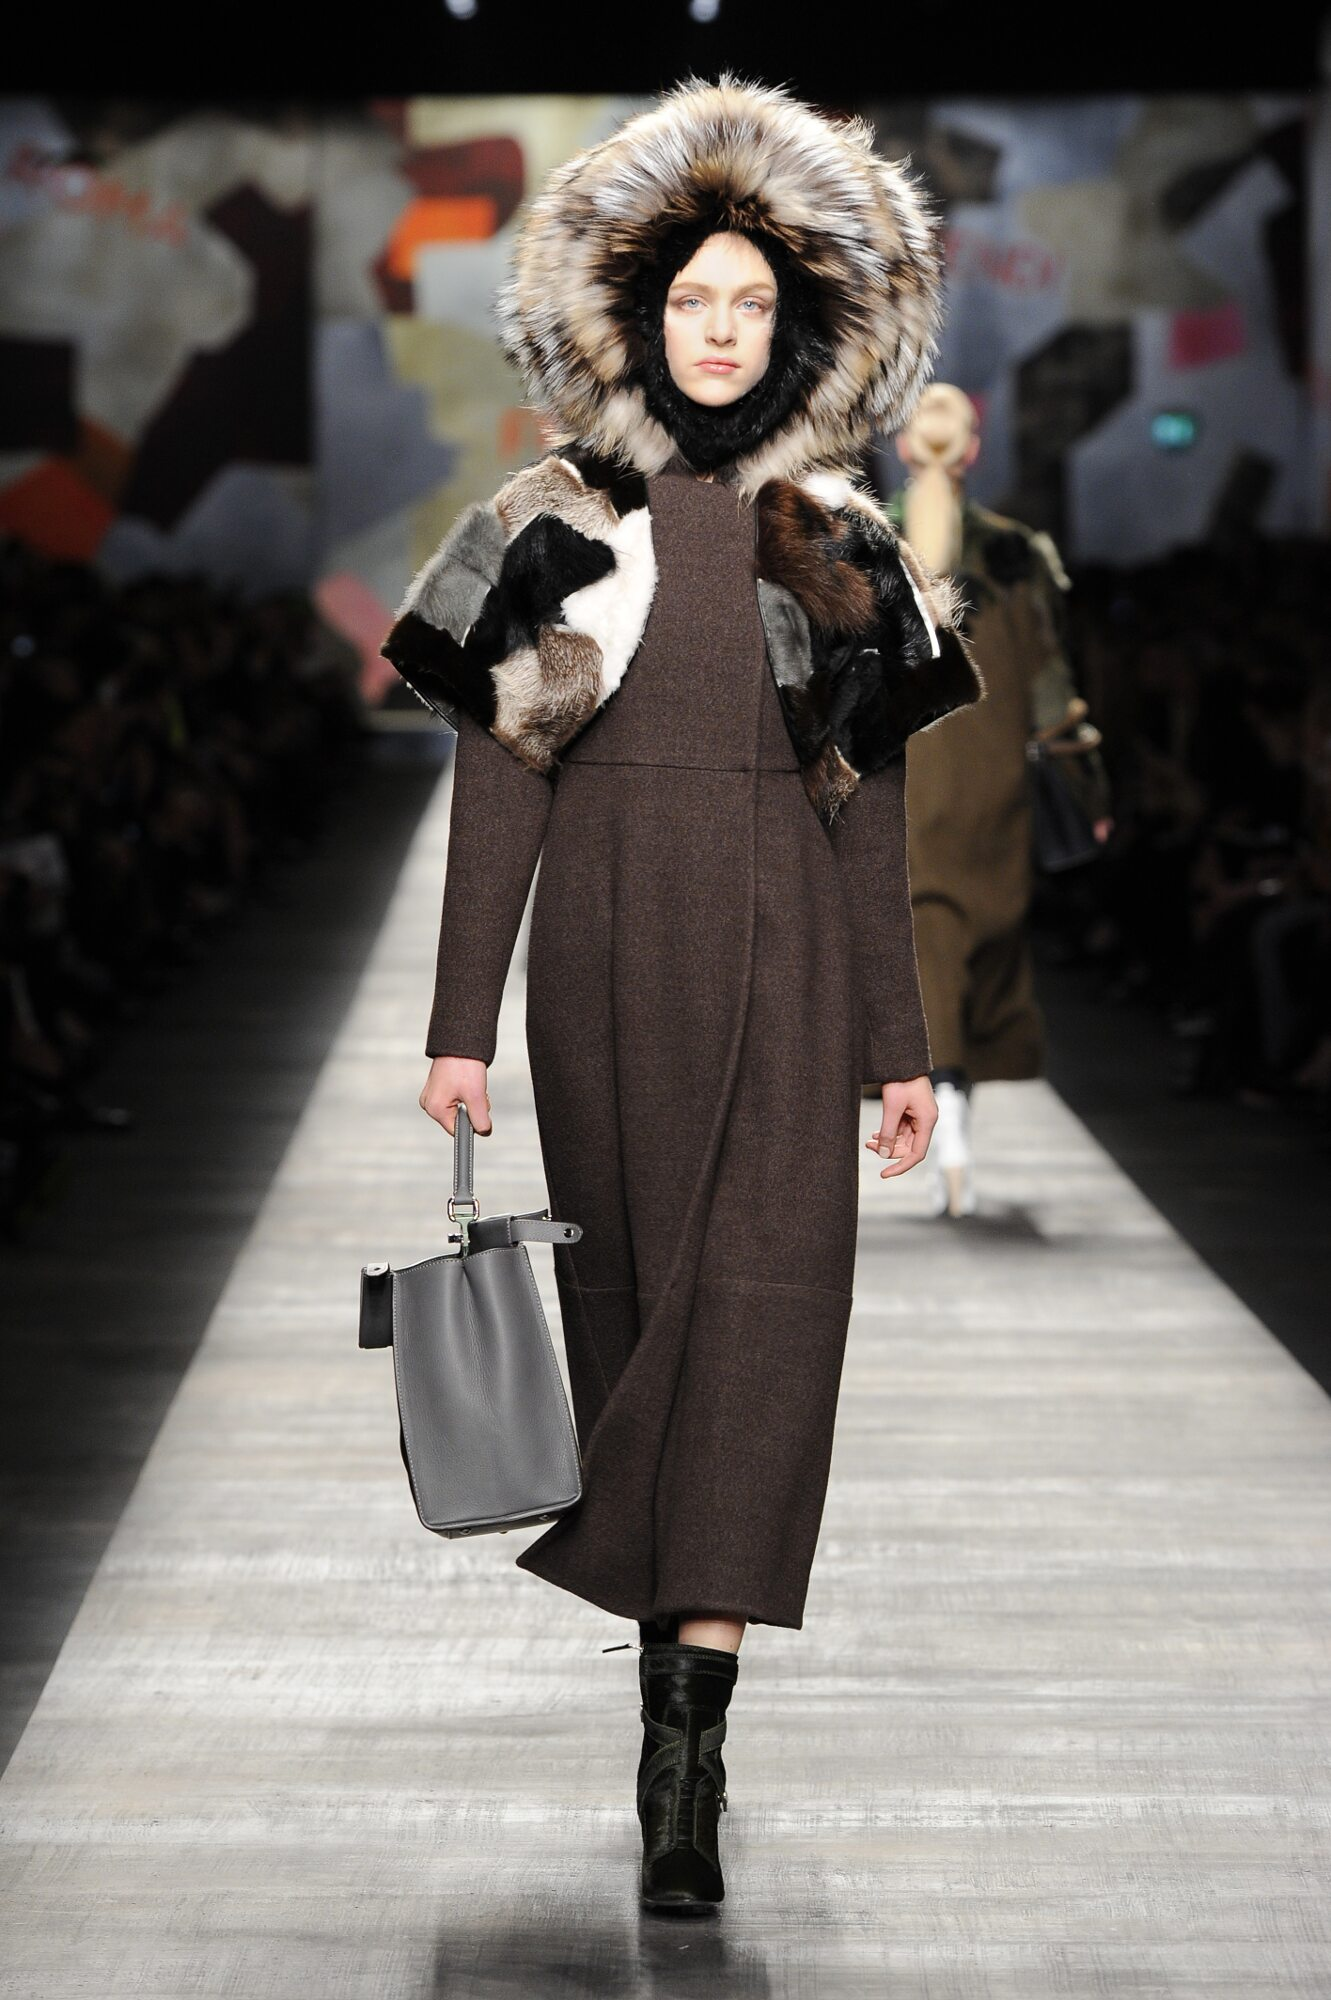 Fendi Fashion Show FW 2014 2015